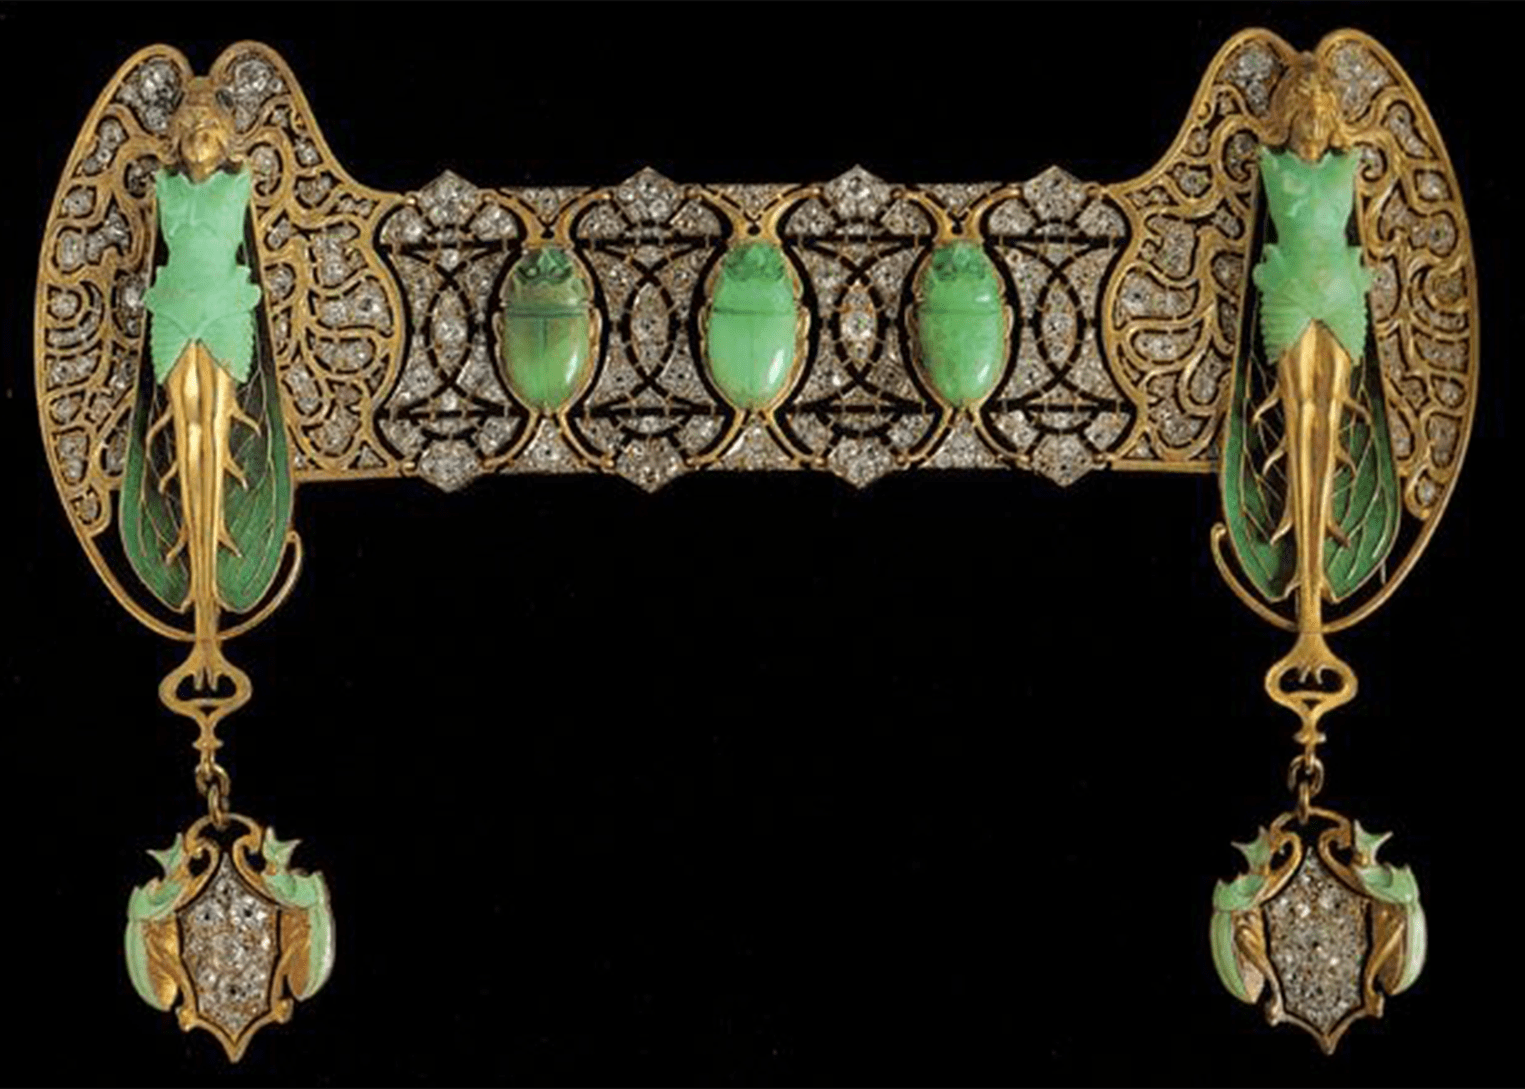 brooch by Rene Lalique